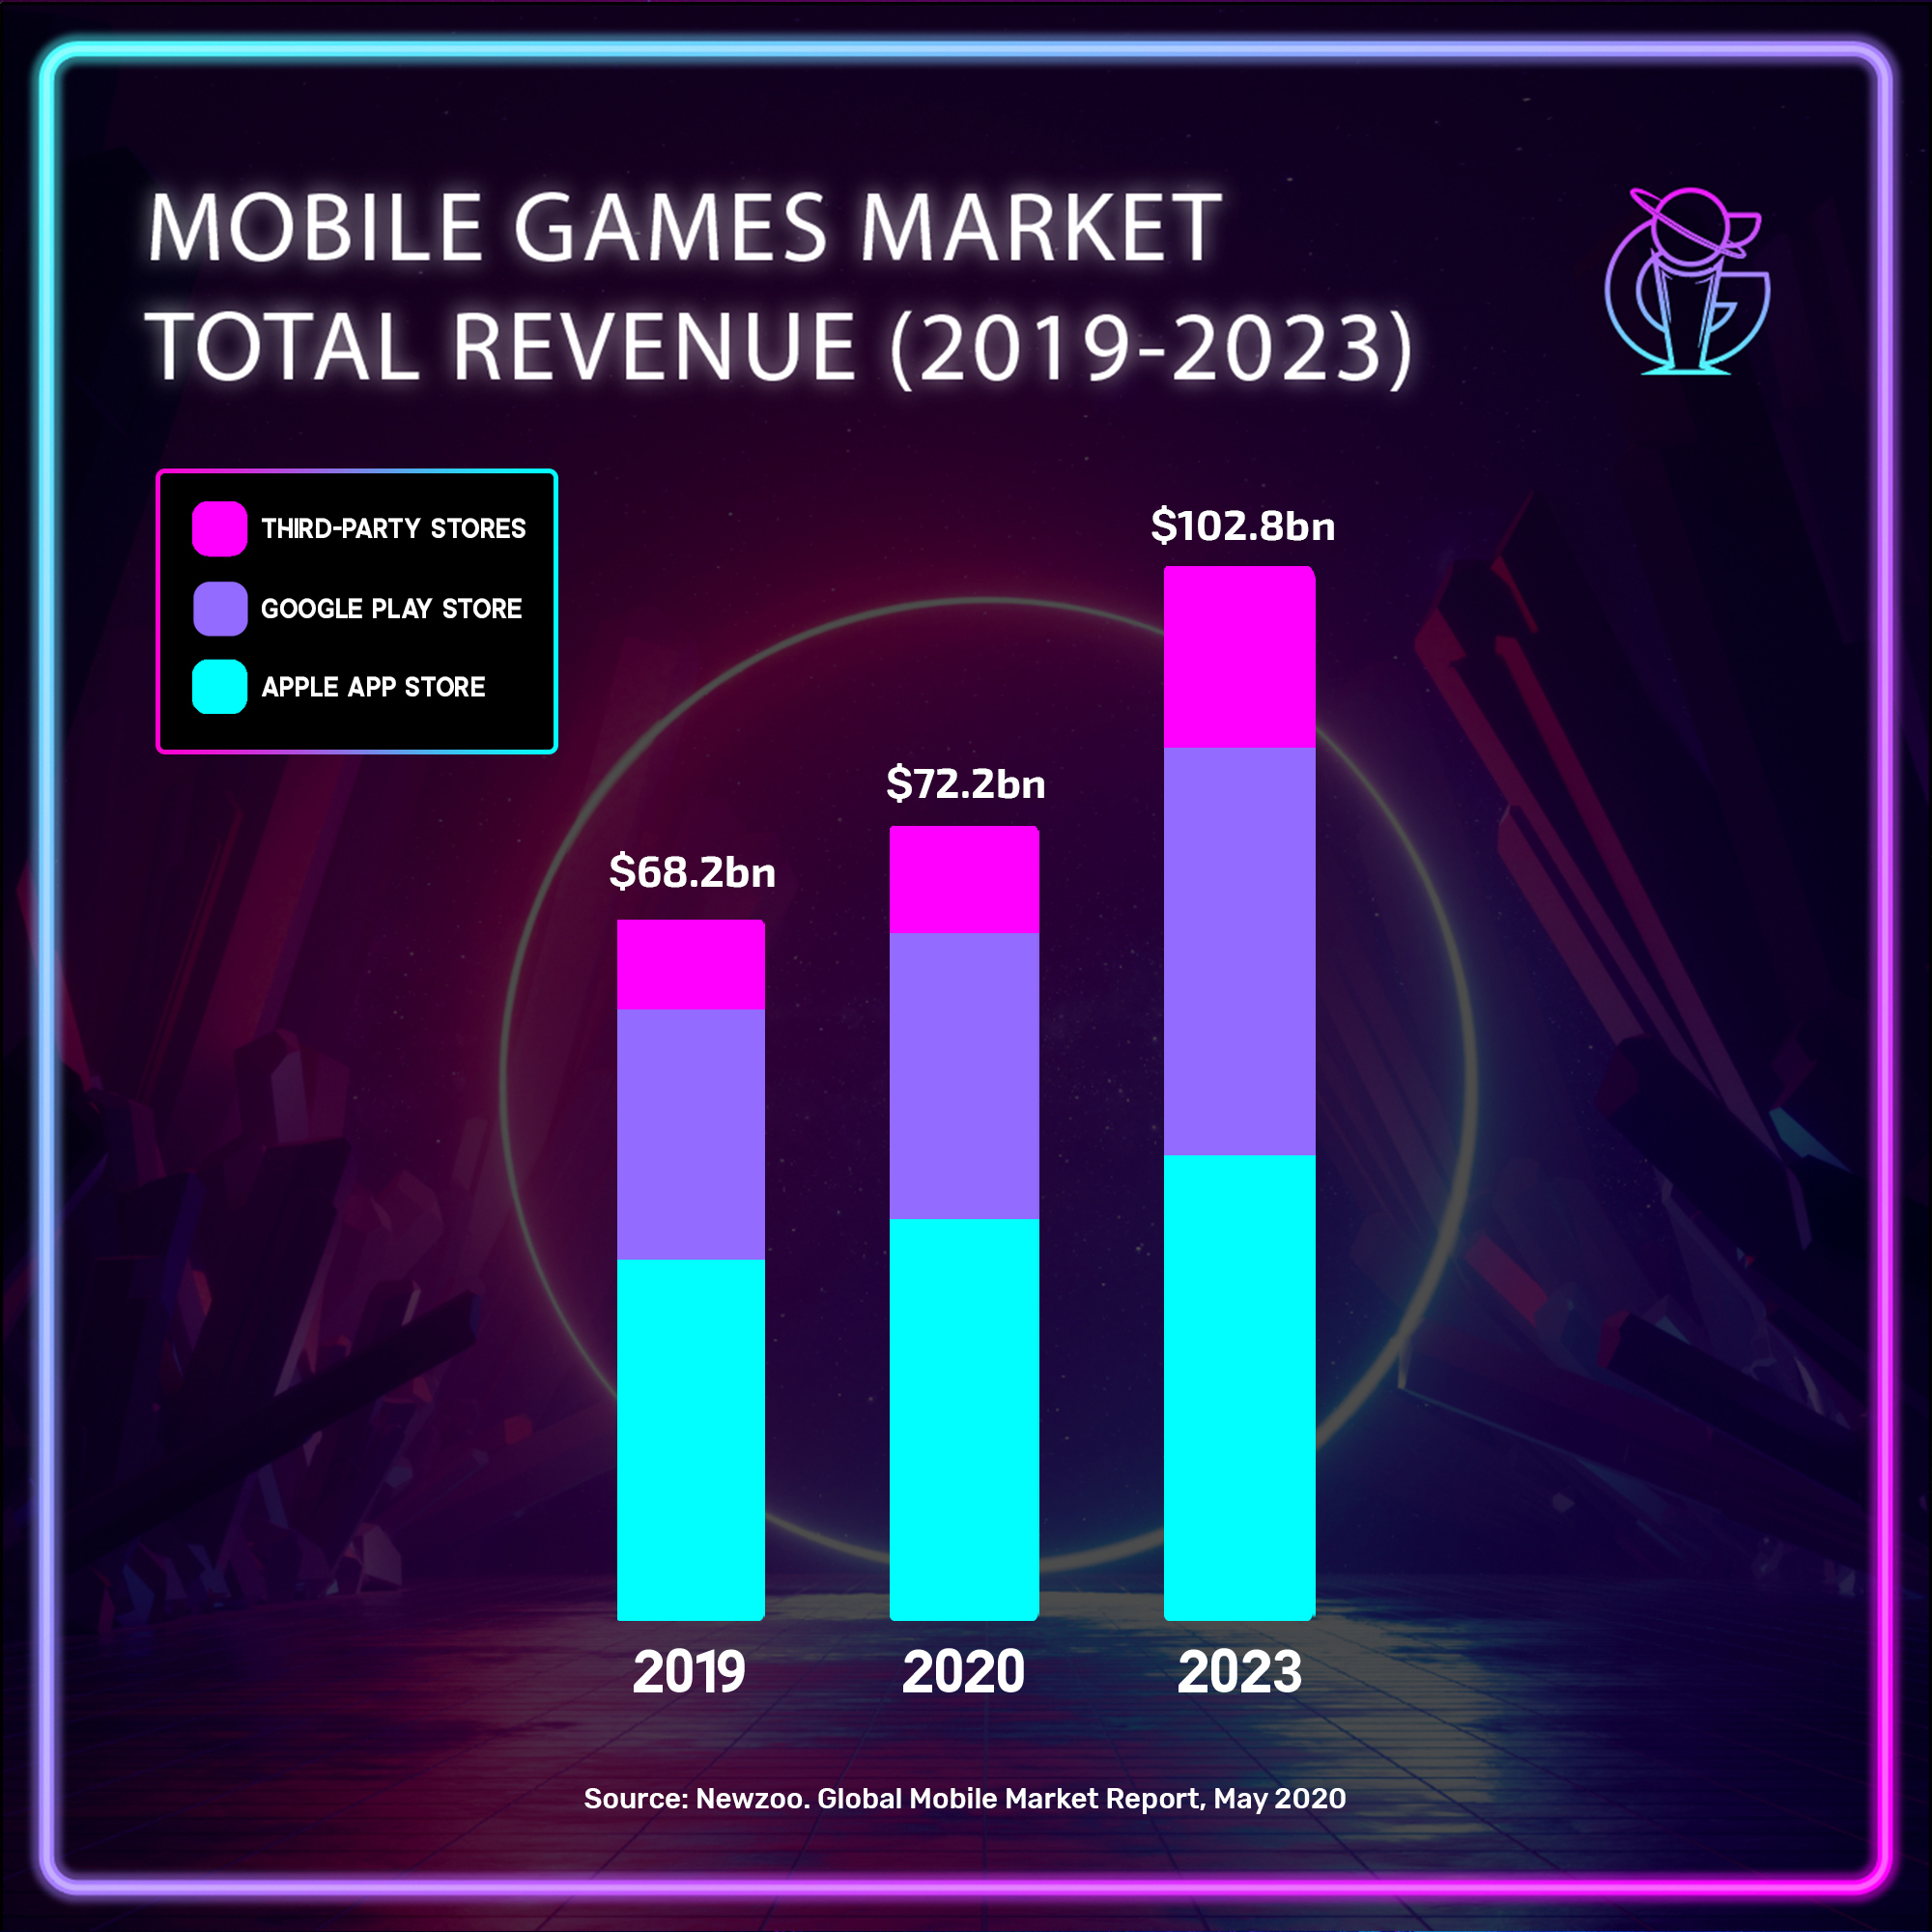 The mobile games market is projected to surpass the $100-billion dollar mark by 2023!